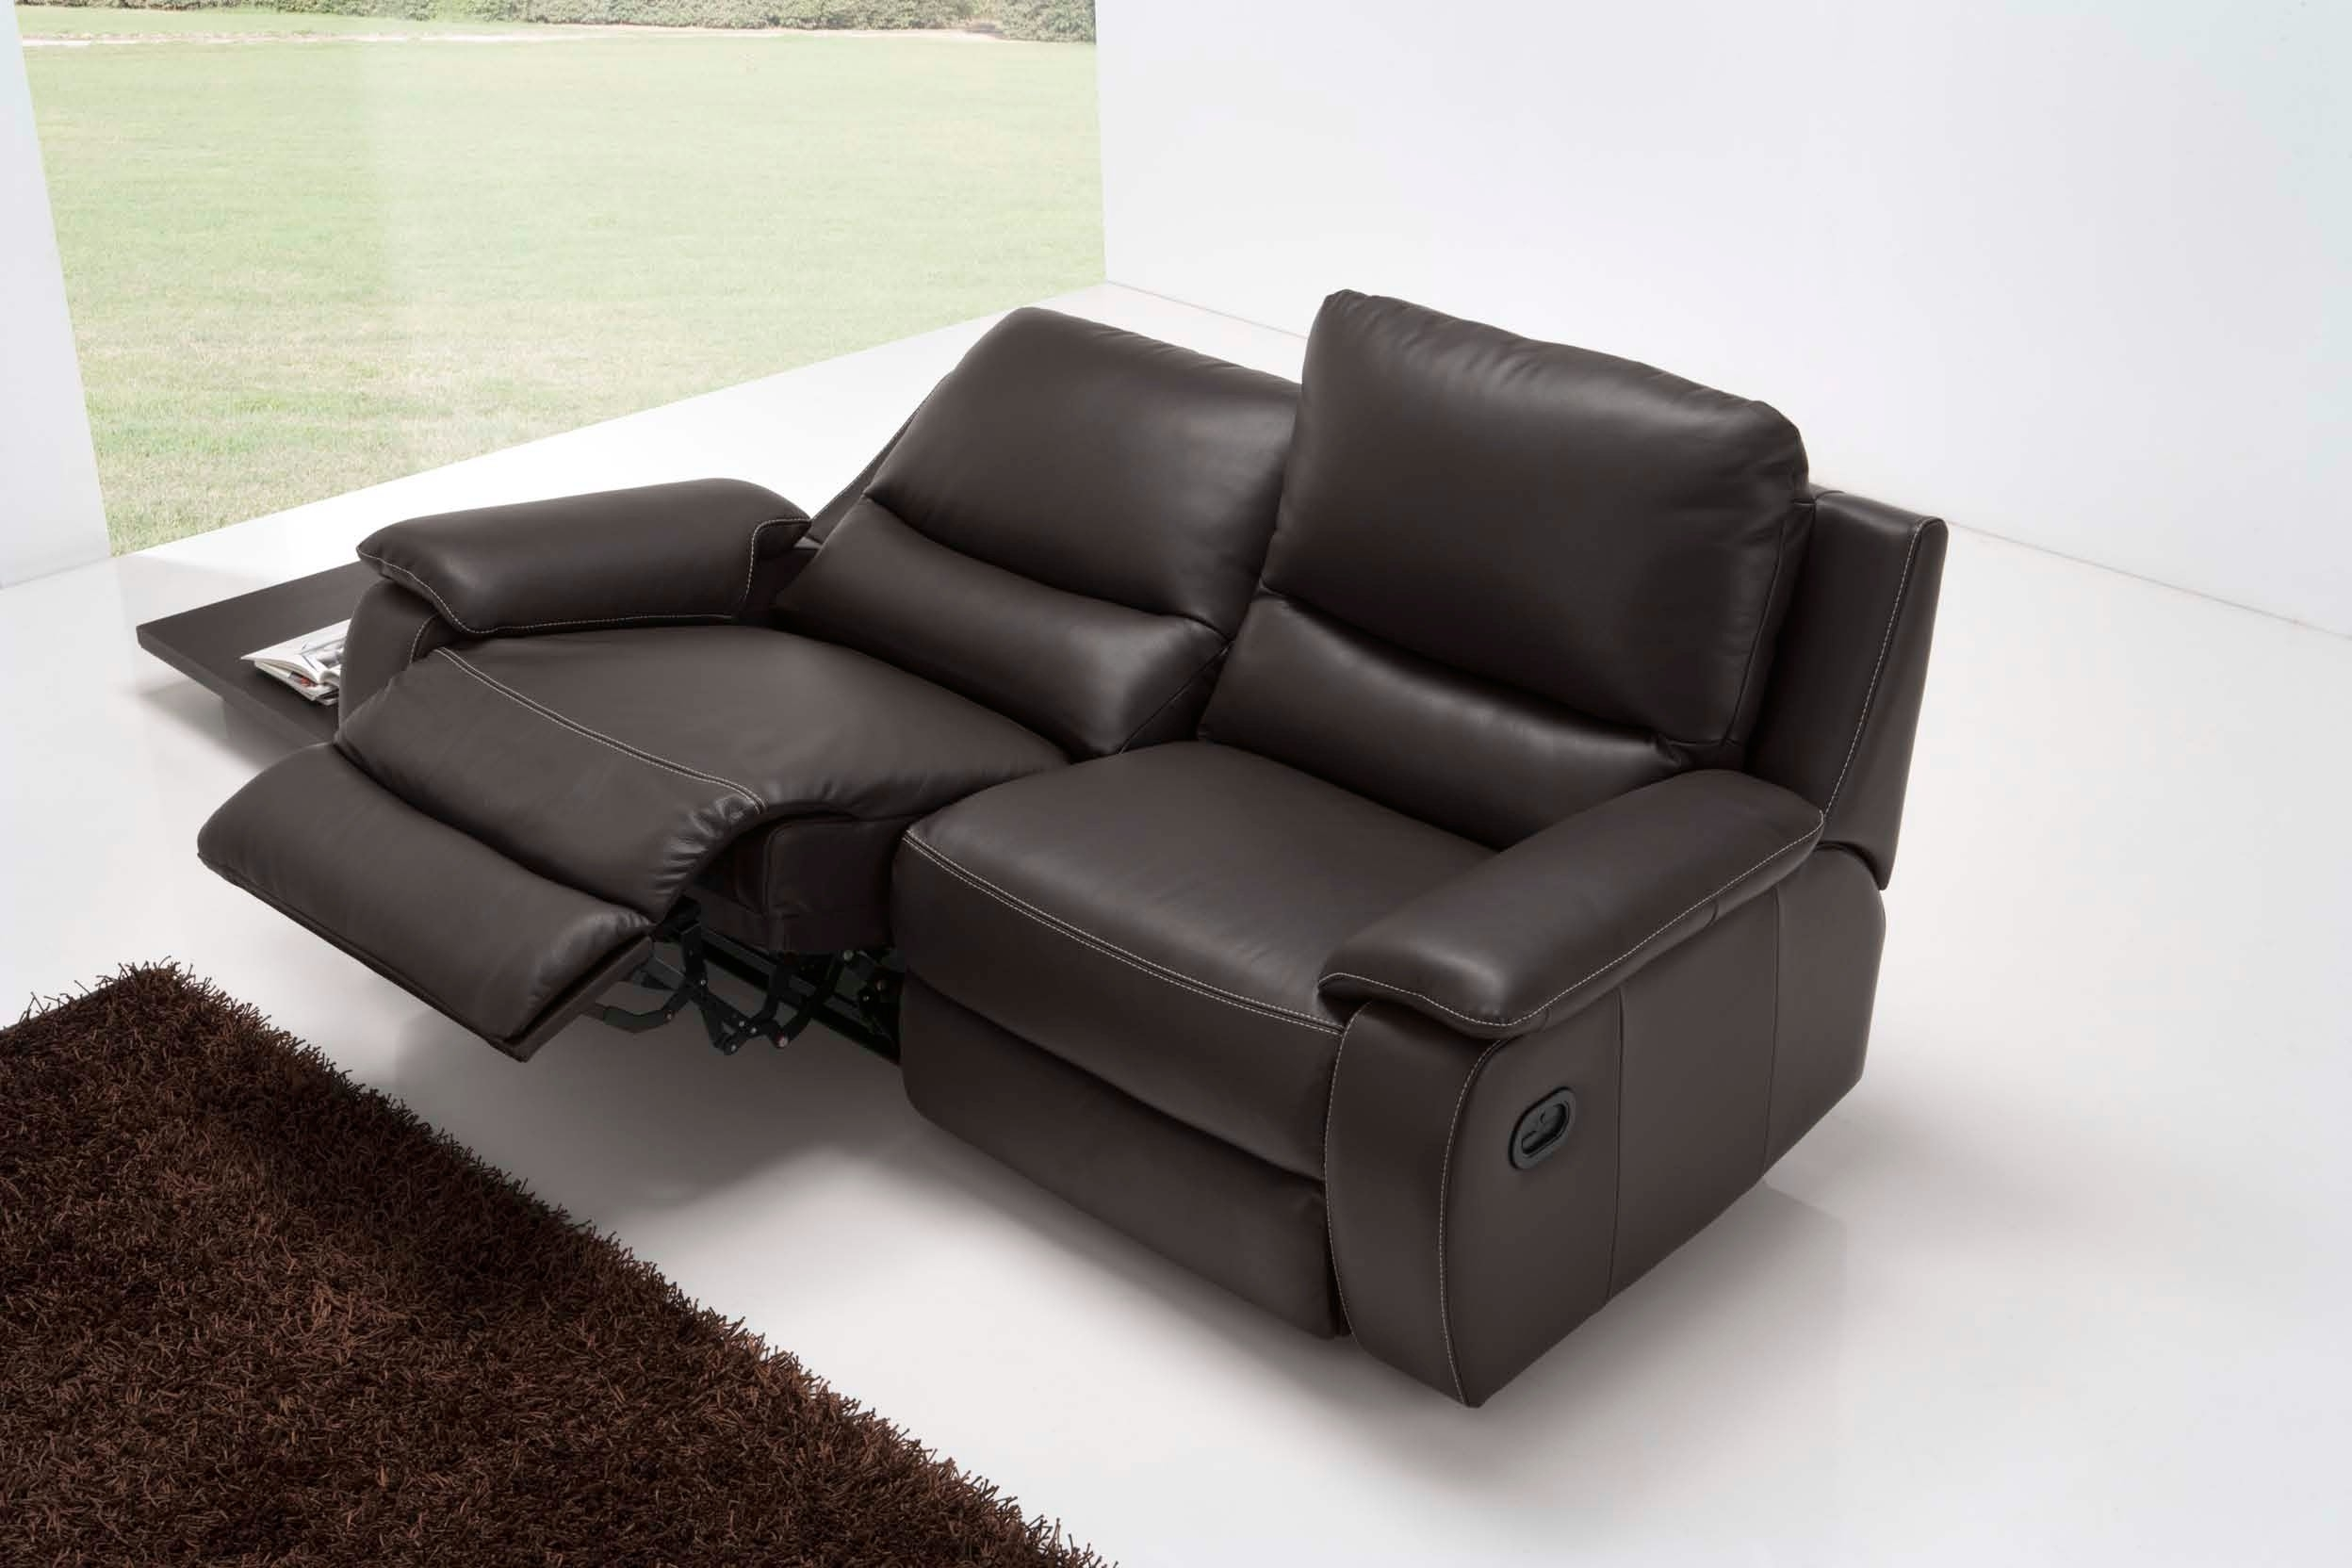 3 Seater Recliner Sofa Best Price 3 Seat Reclining Sofa With Cup With Regard To 2018 2 Seat Recliner Sofas (View 12 of 15)